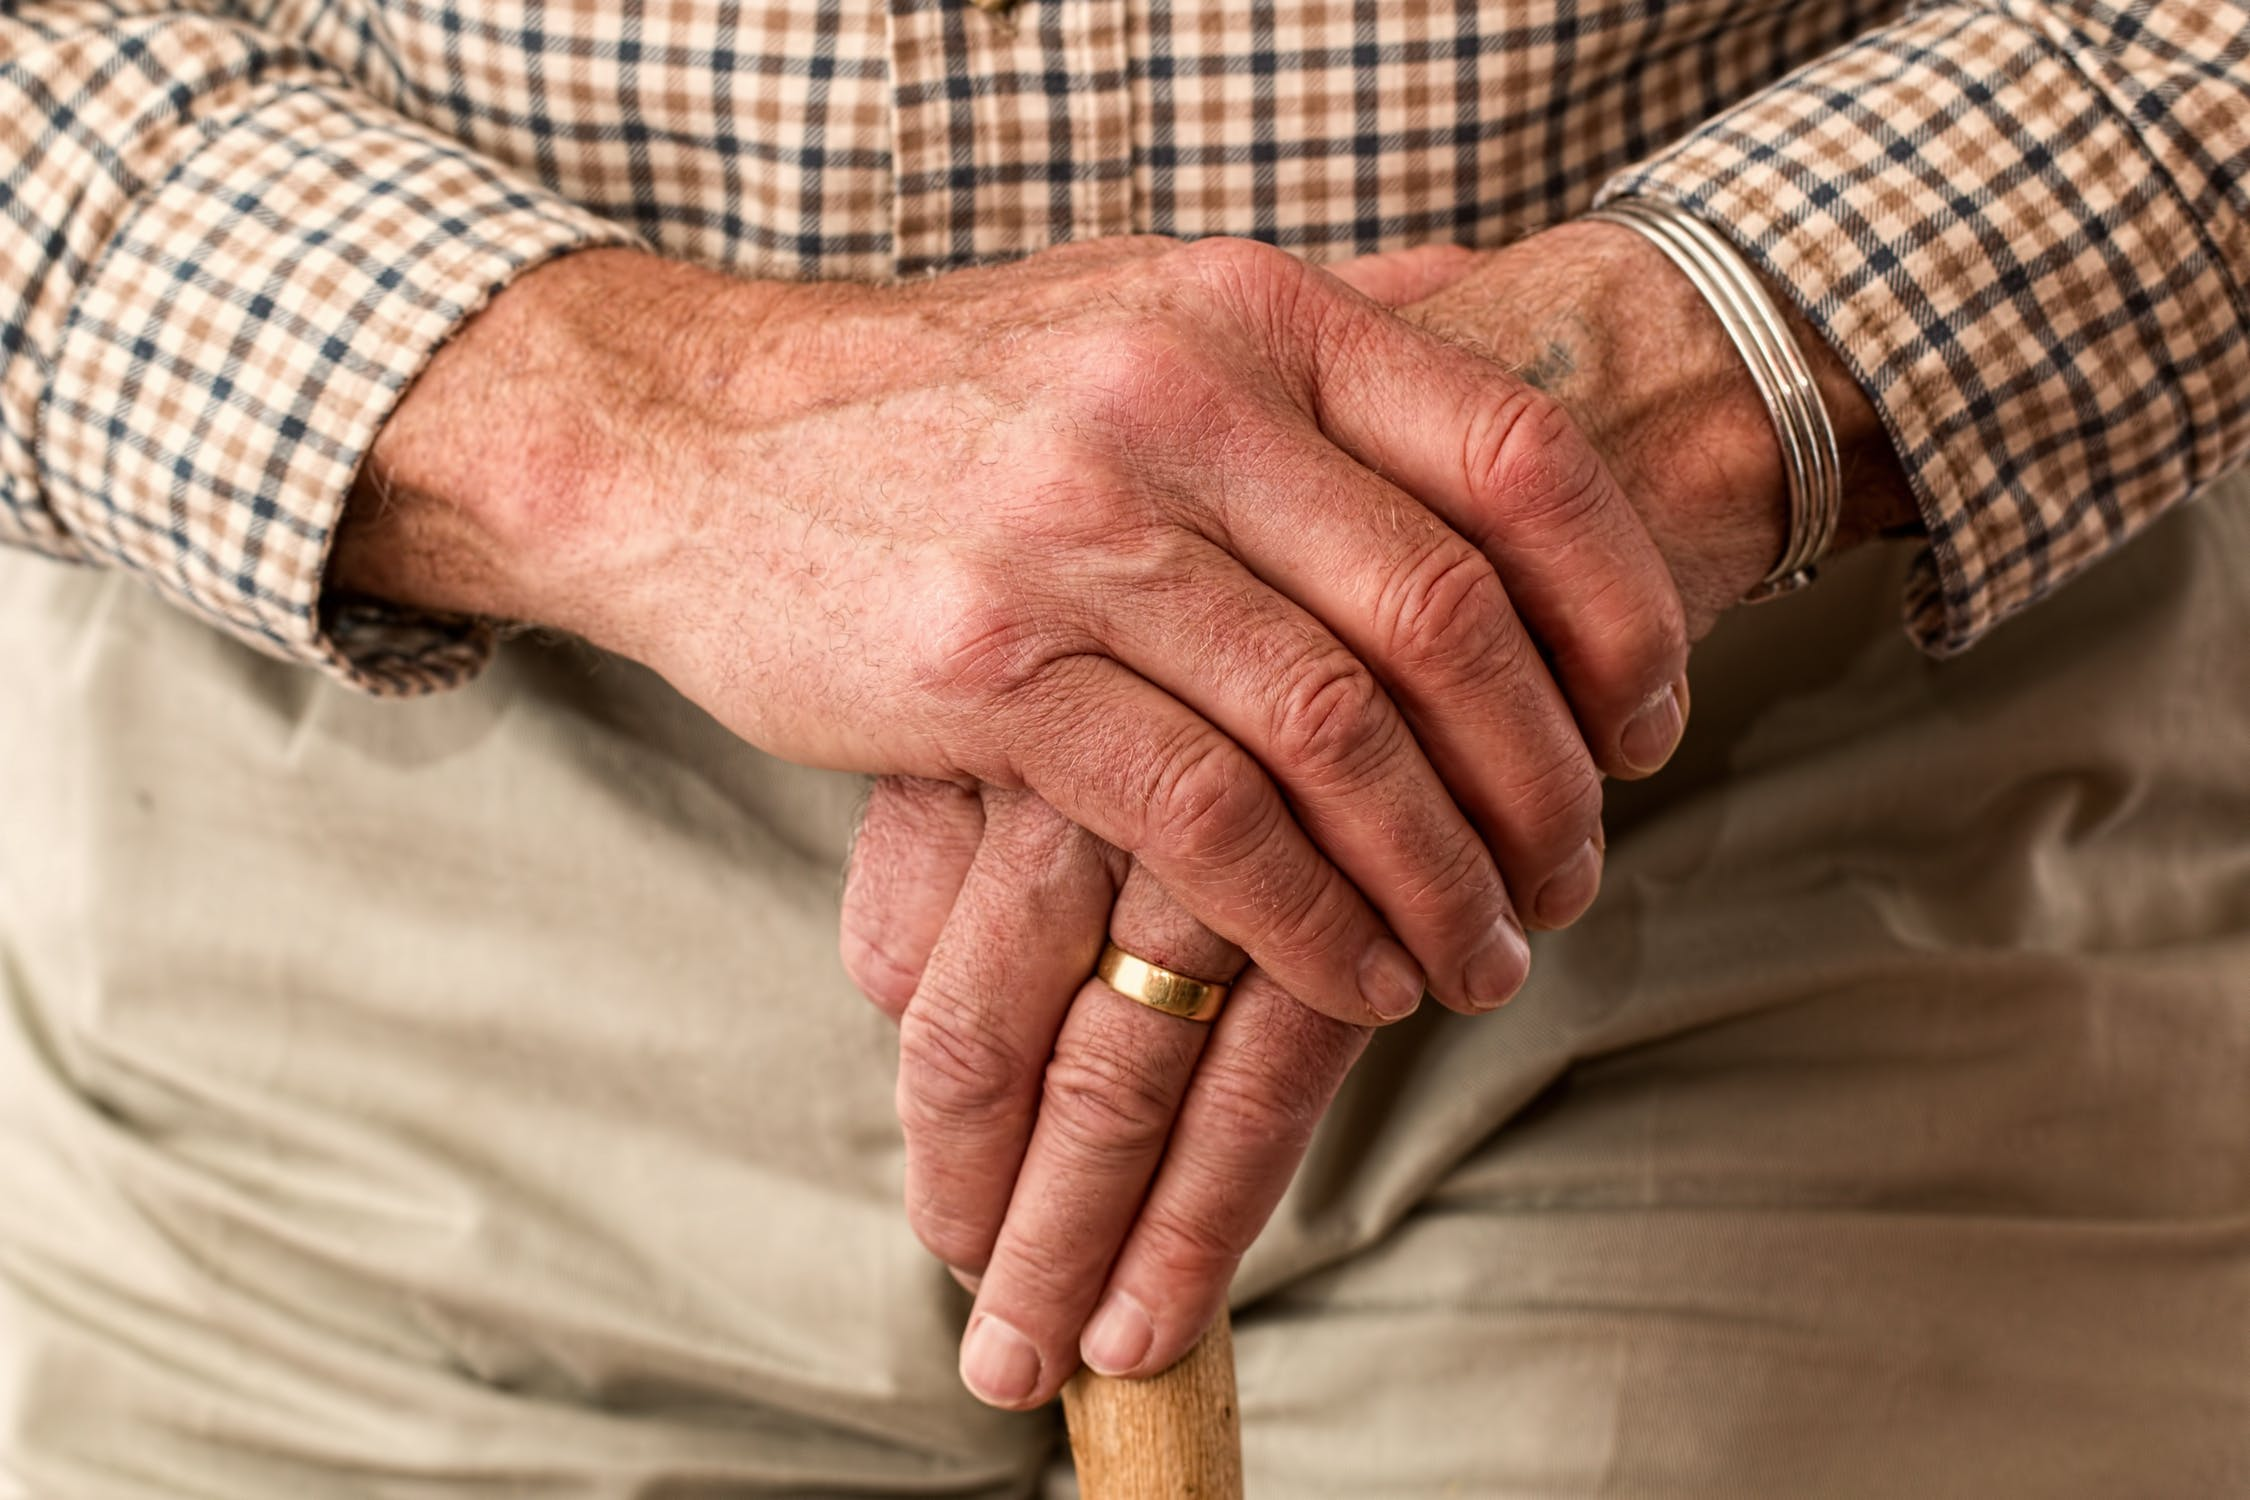 Irvine Civil Litigation Lawyers Examine Elder Abuse